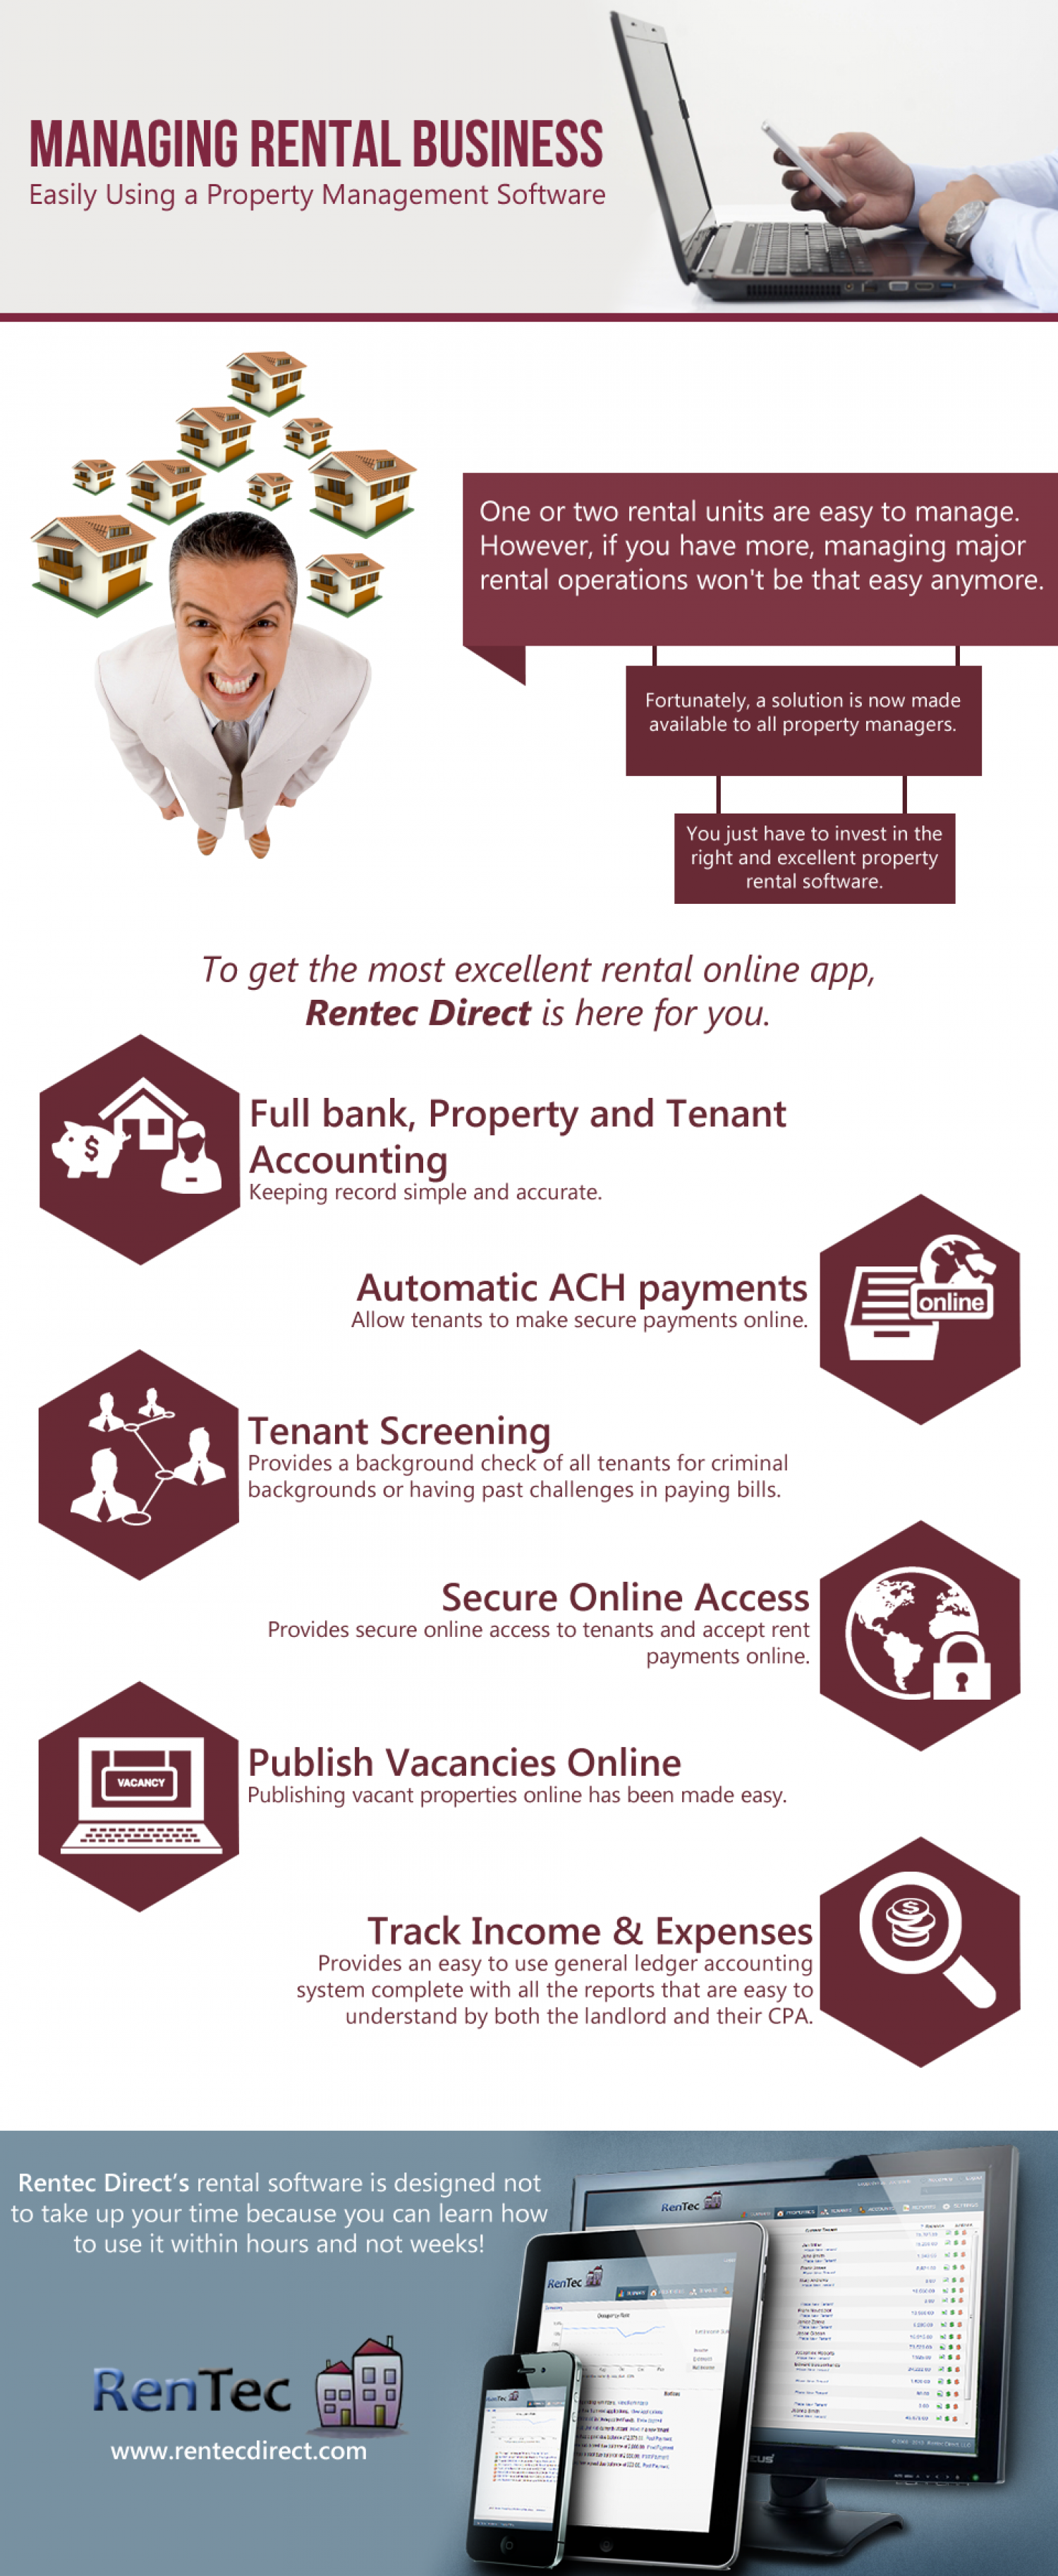 Managing Rental Business Easily Using a Property Management Software Infographic